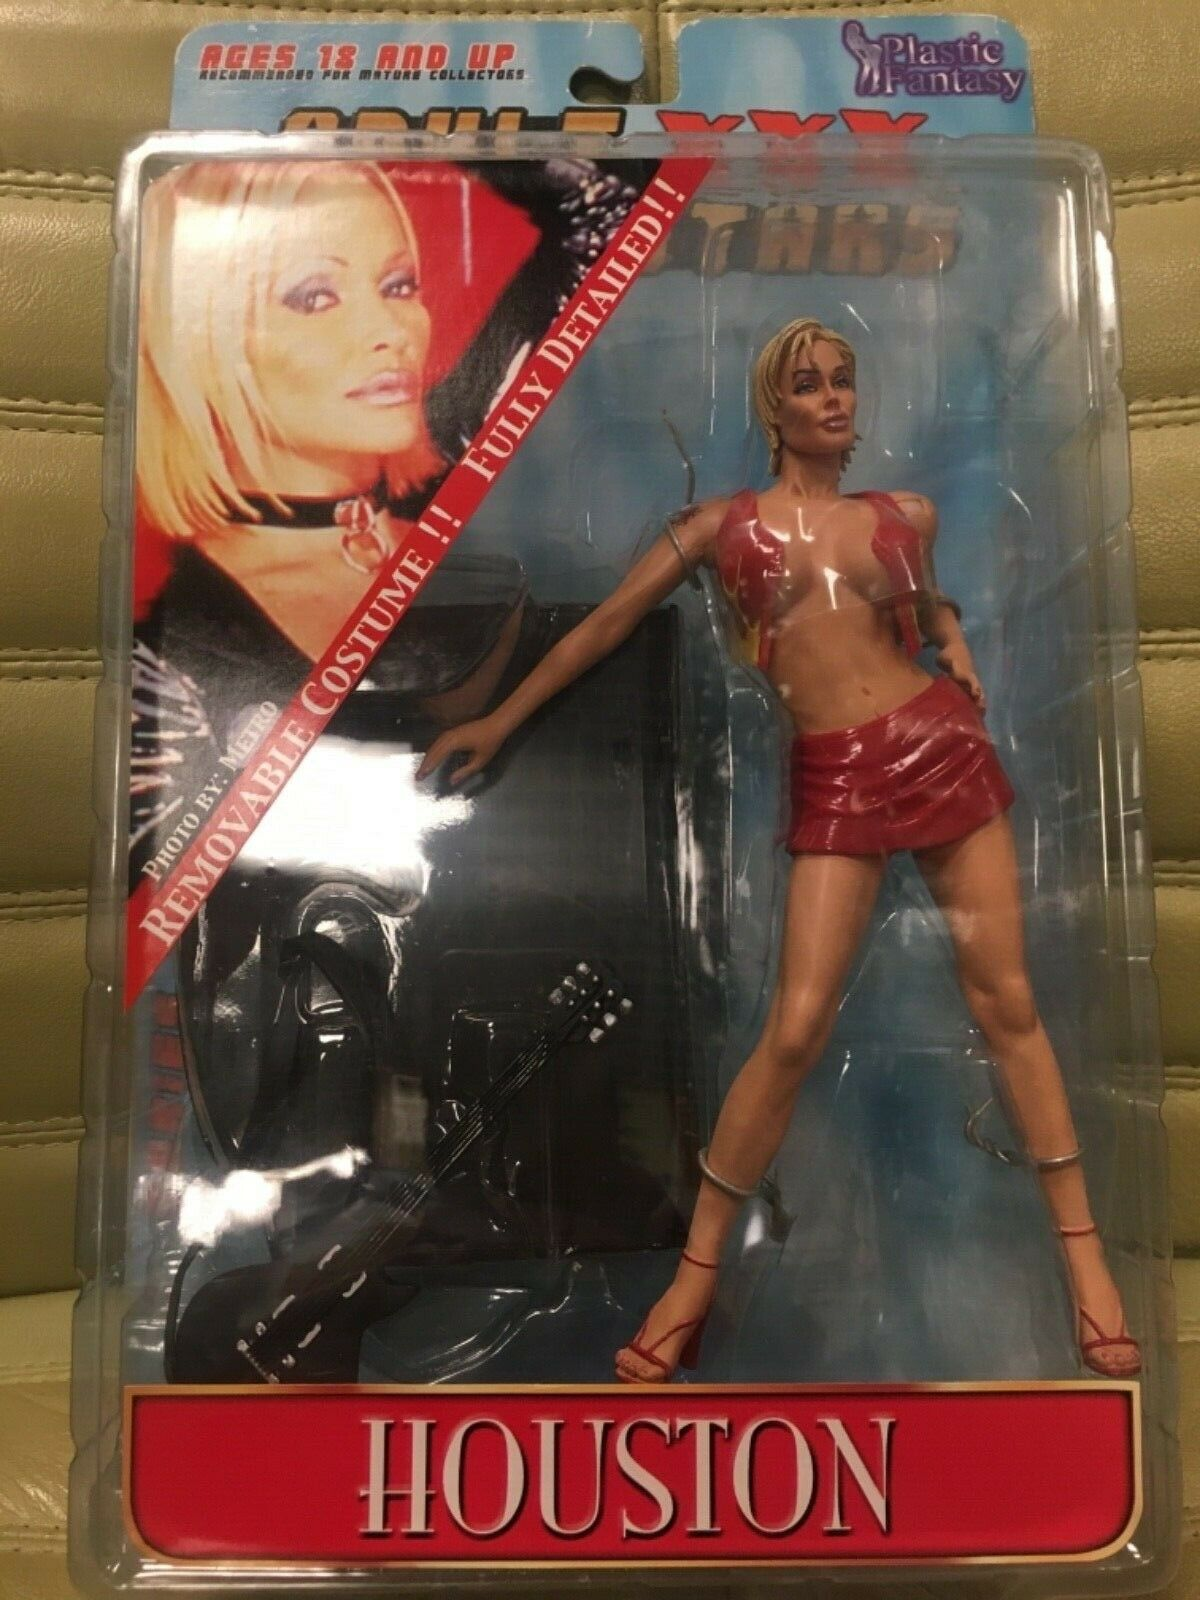 Adult XXX Superstars Houston in rot Clothes Action Figure Plastic Fantasy